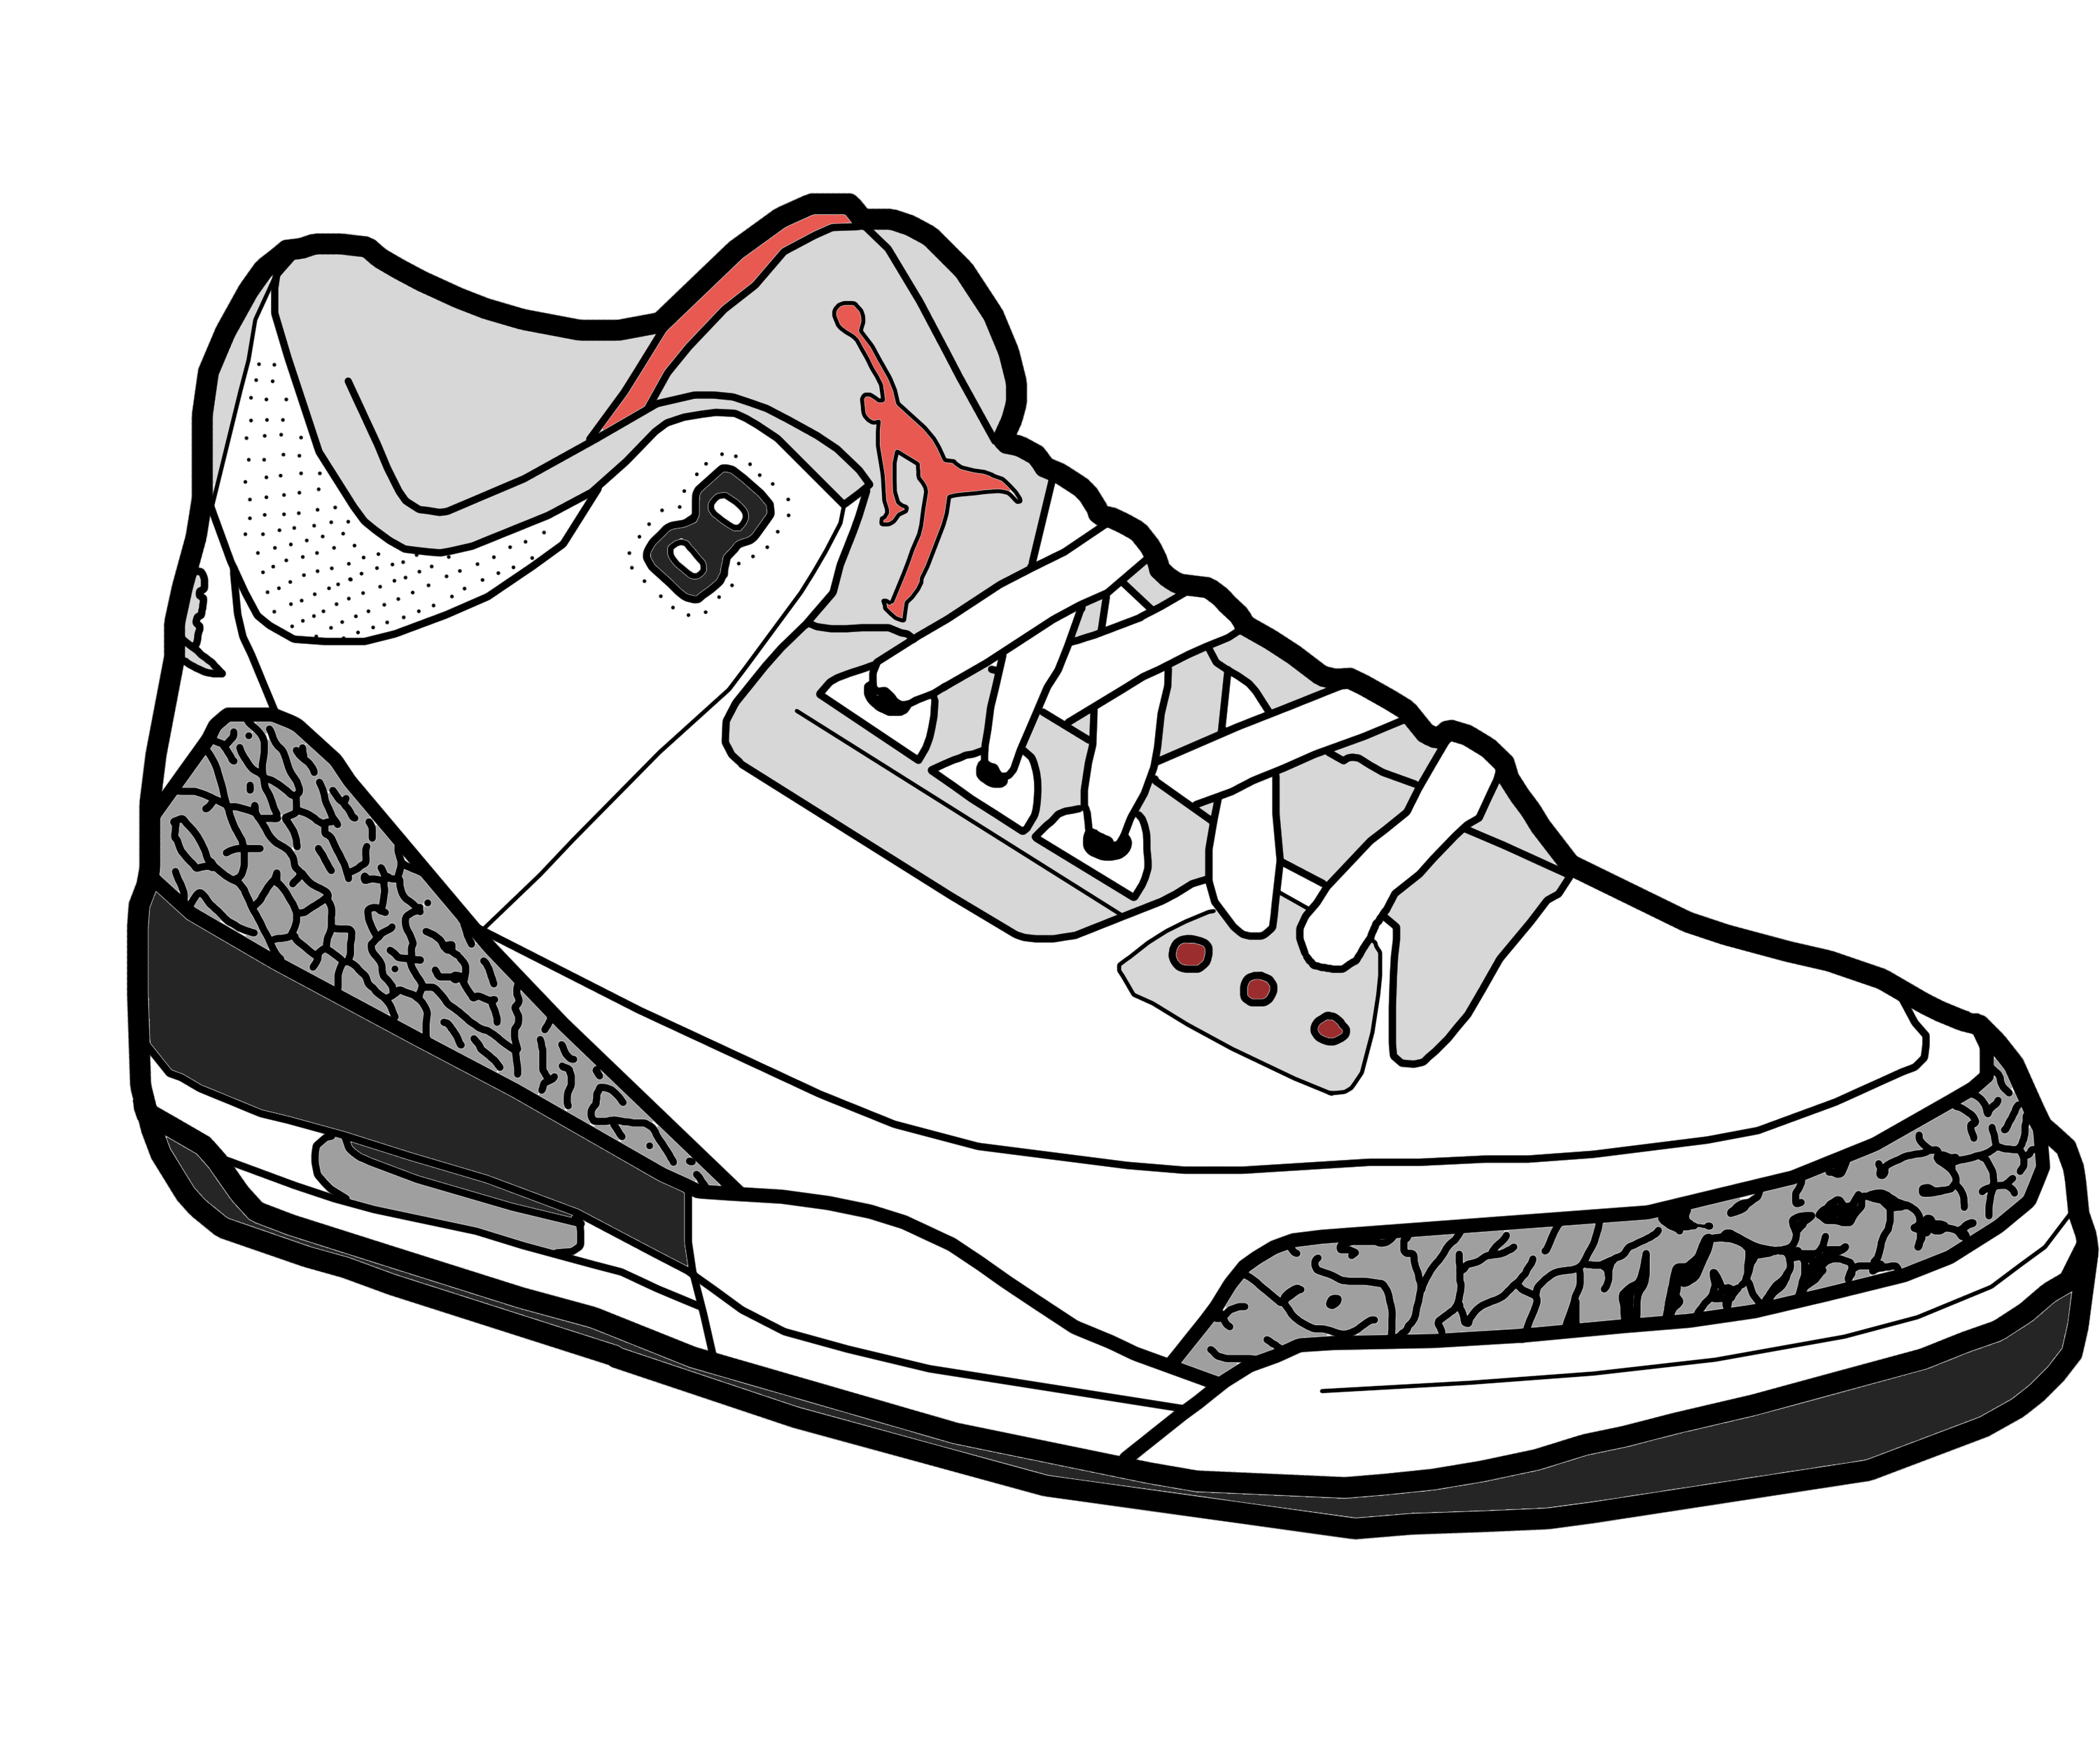 Jumpman Air Jordan Shoe Sneakers Clip art.